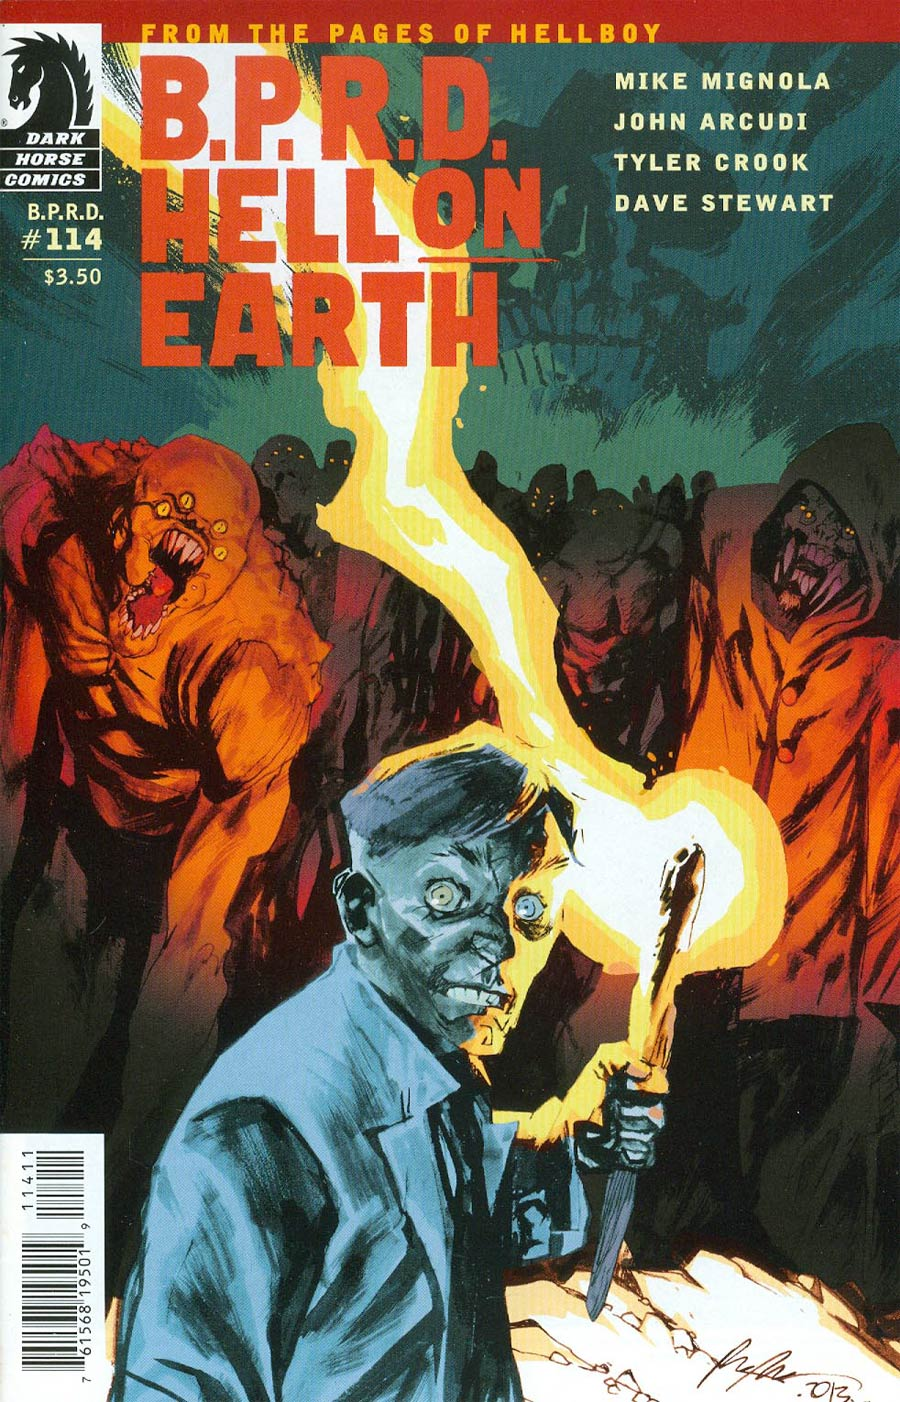 BPRD Hell On Earth #114